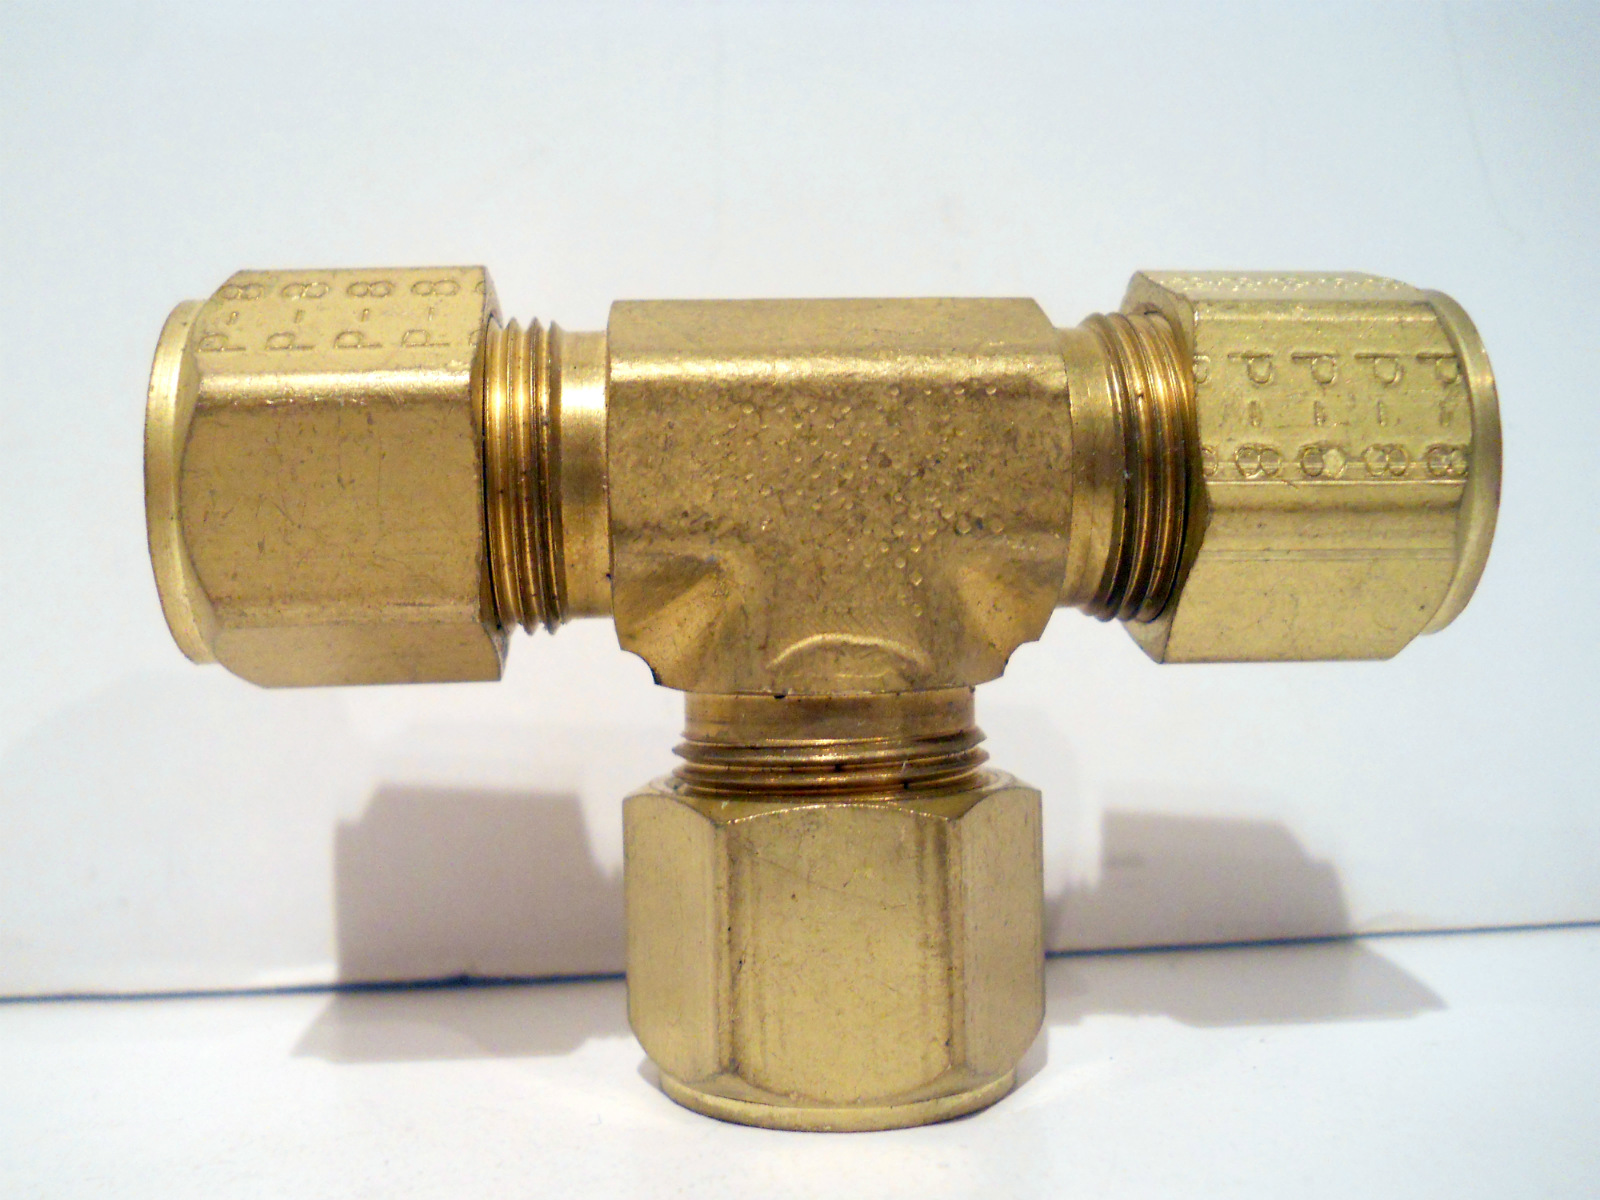 New parker brass quot tube cpi compression fitting union